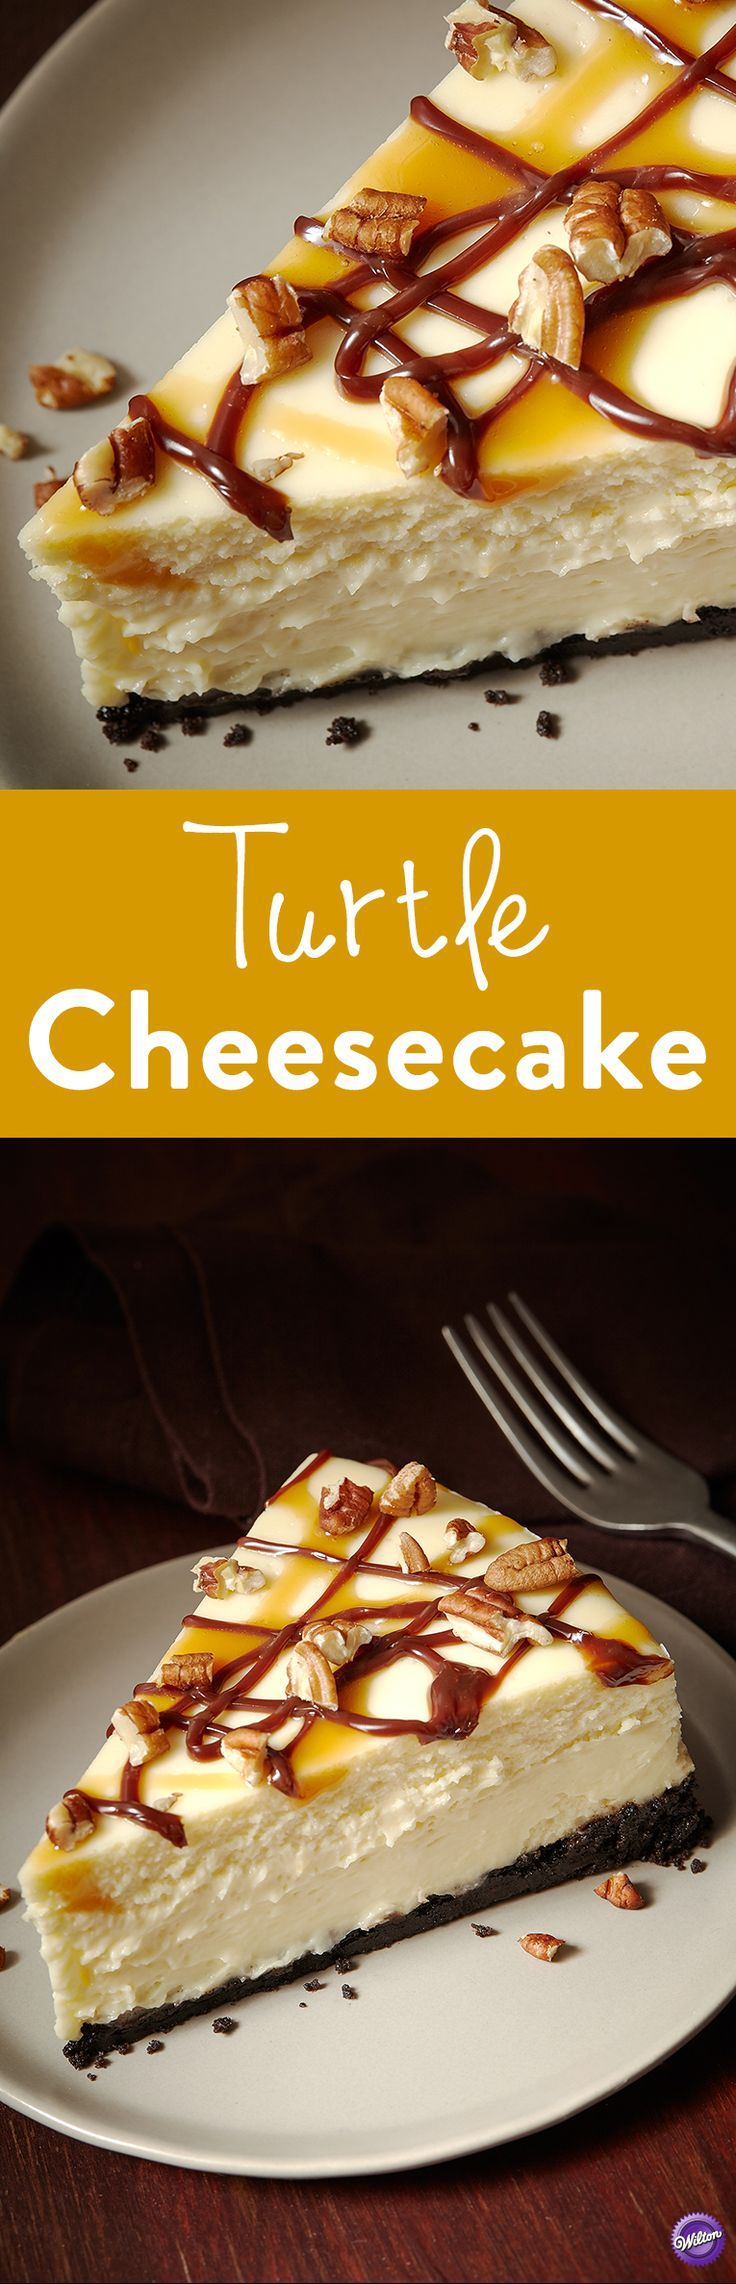 Turtle Cheesecake Recipe - Caramel, fudge and pecans mean one thing: it's turtle time! This classic turtle cheesecake is finished off with a drizzle of hot fudge and caramel sauce and sprinkled with pecans. A decadent dessert to serve after a good meal.